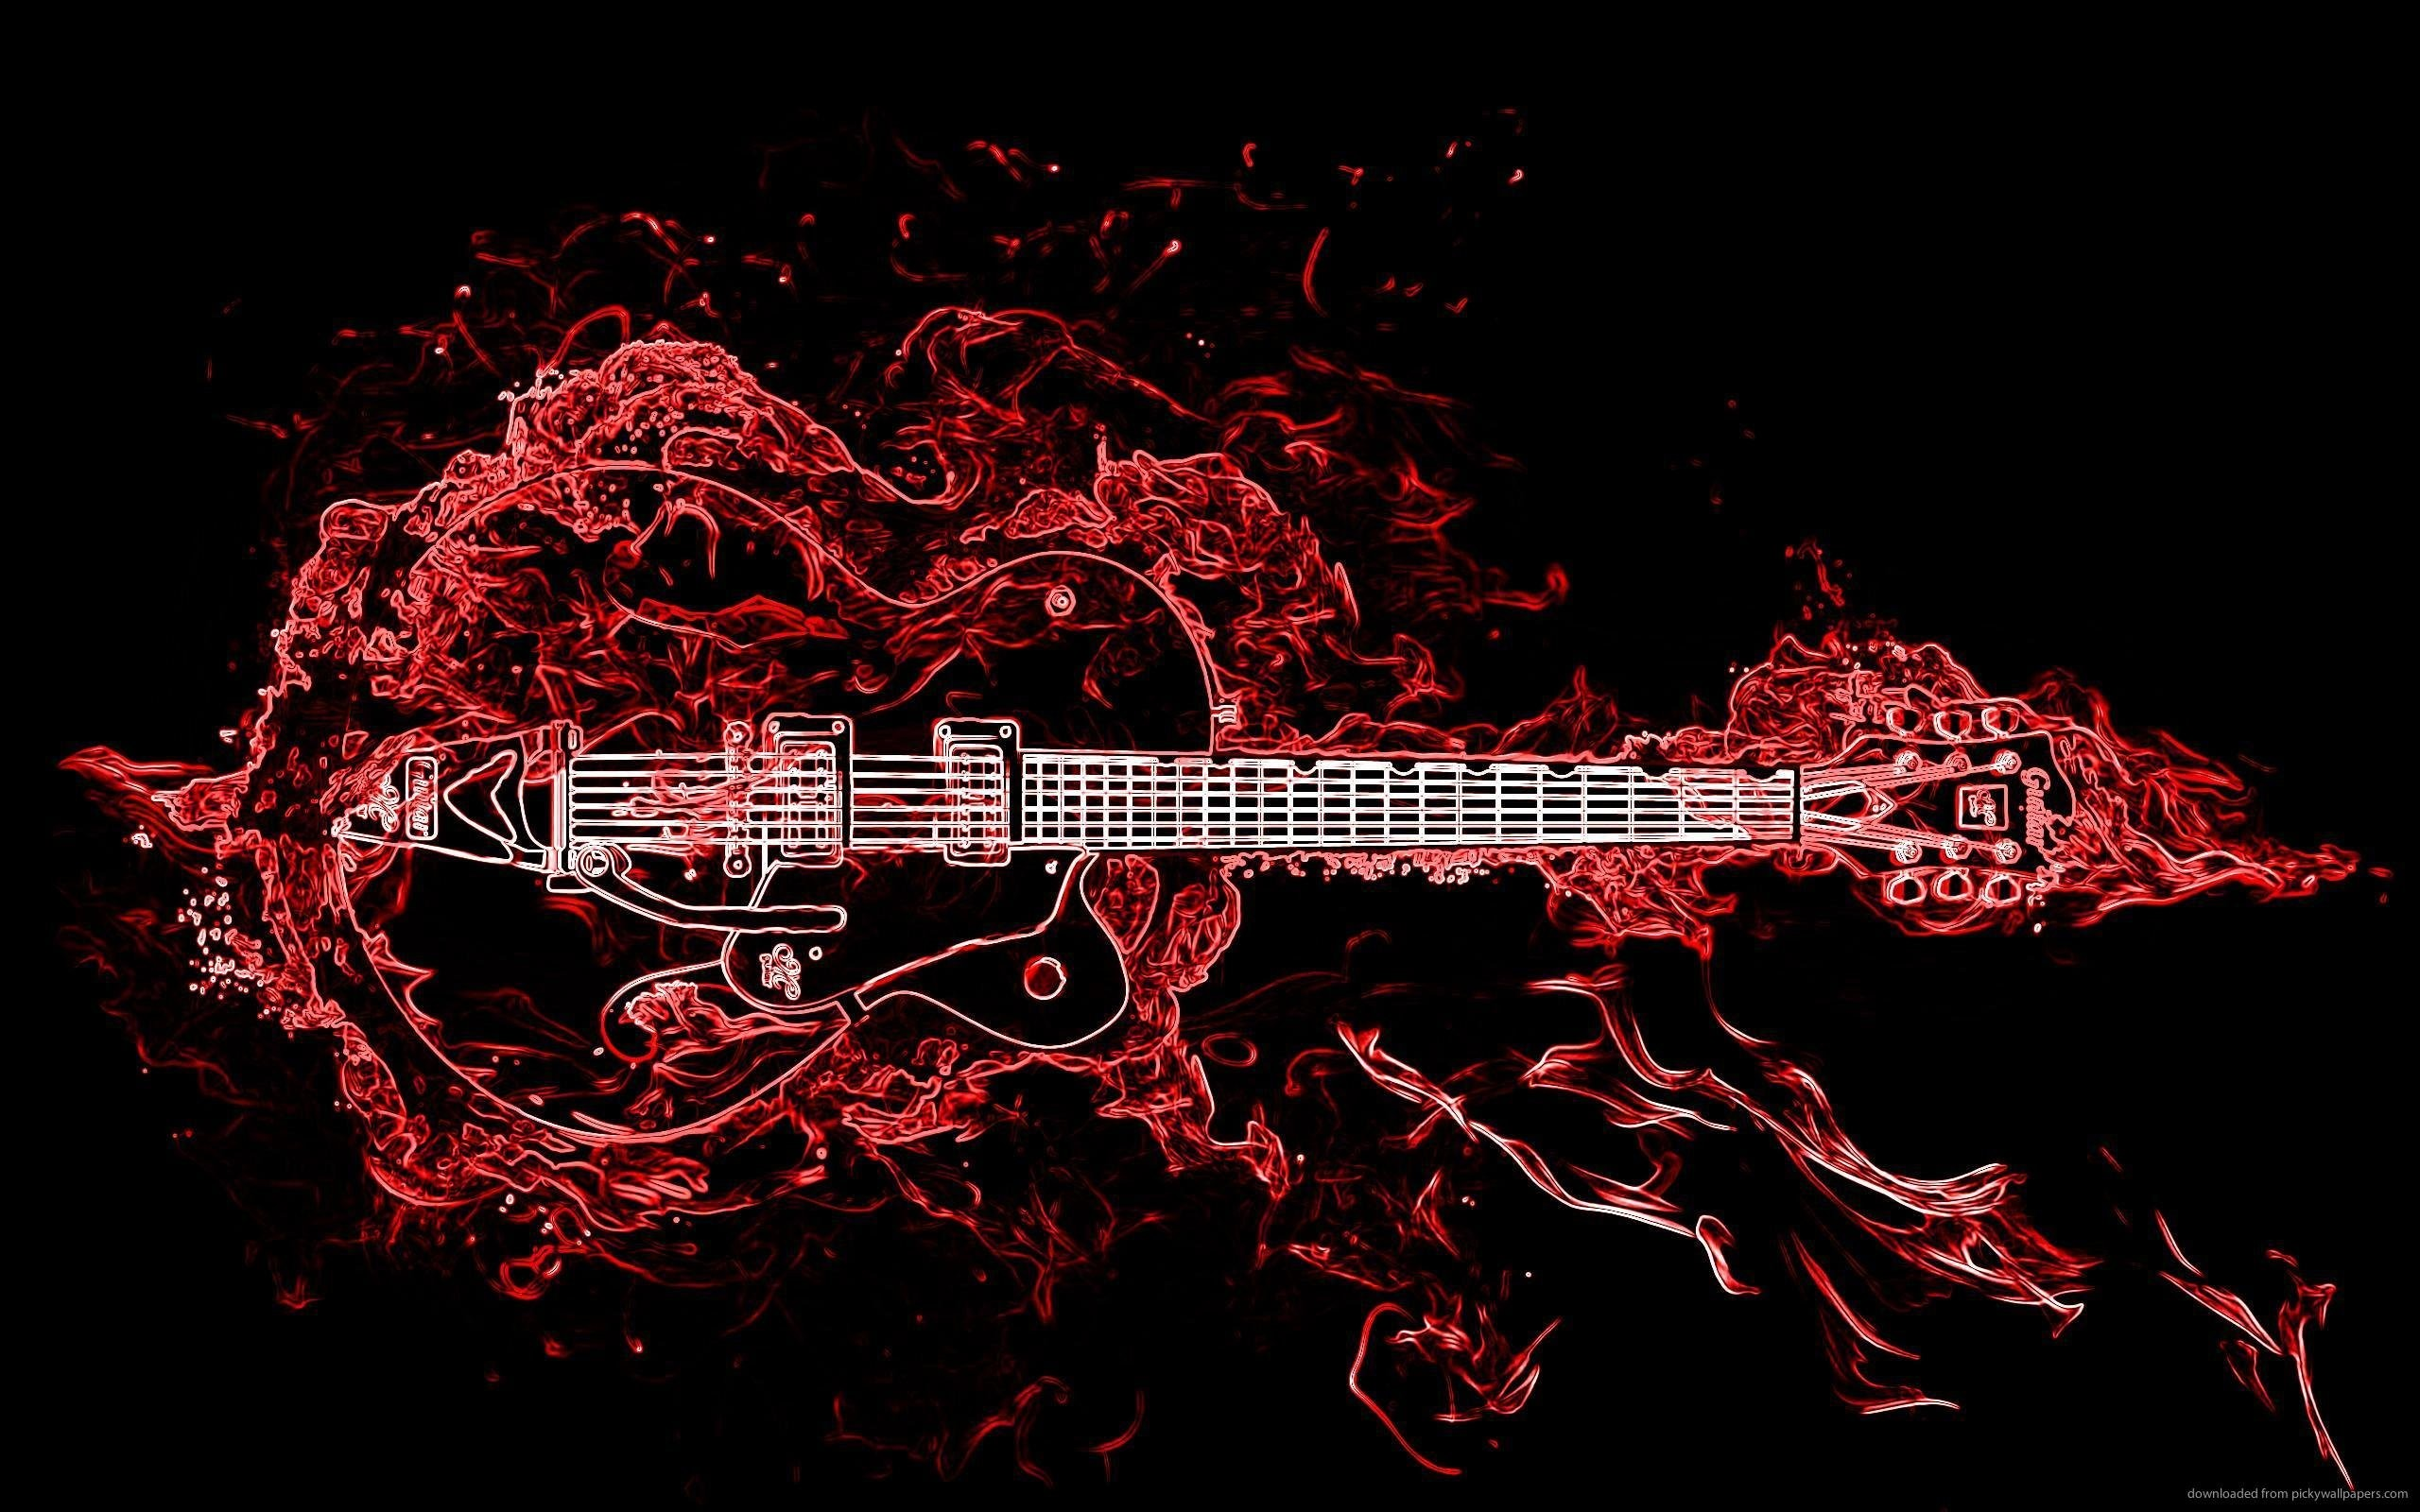 Van halen desktop wallpaper 56 images - Van halen hd wallpaper ...